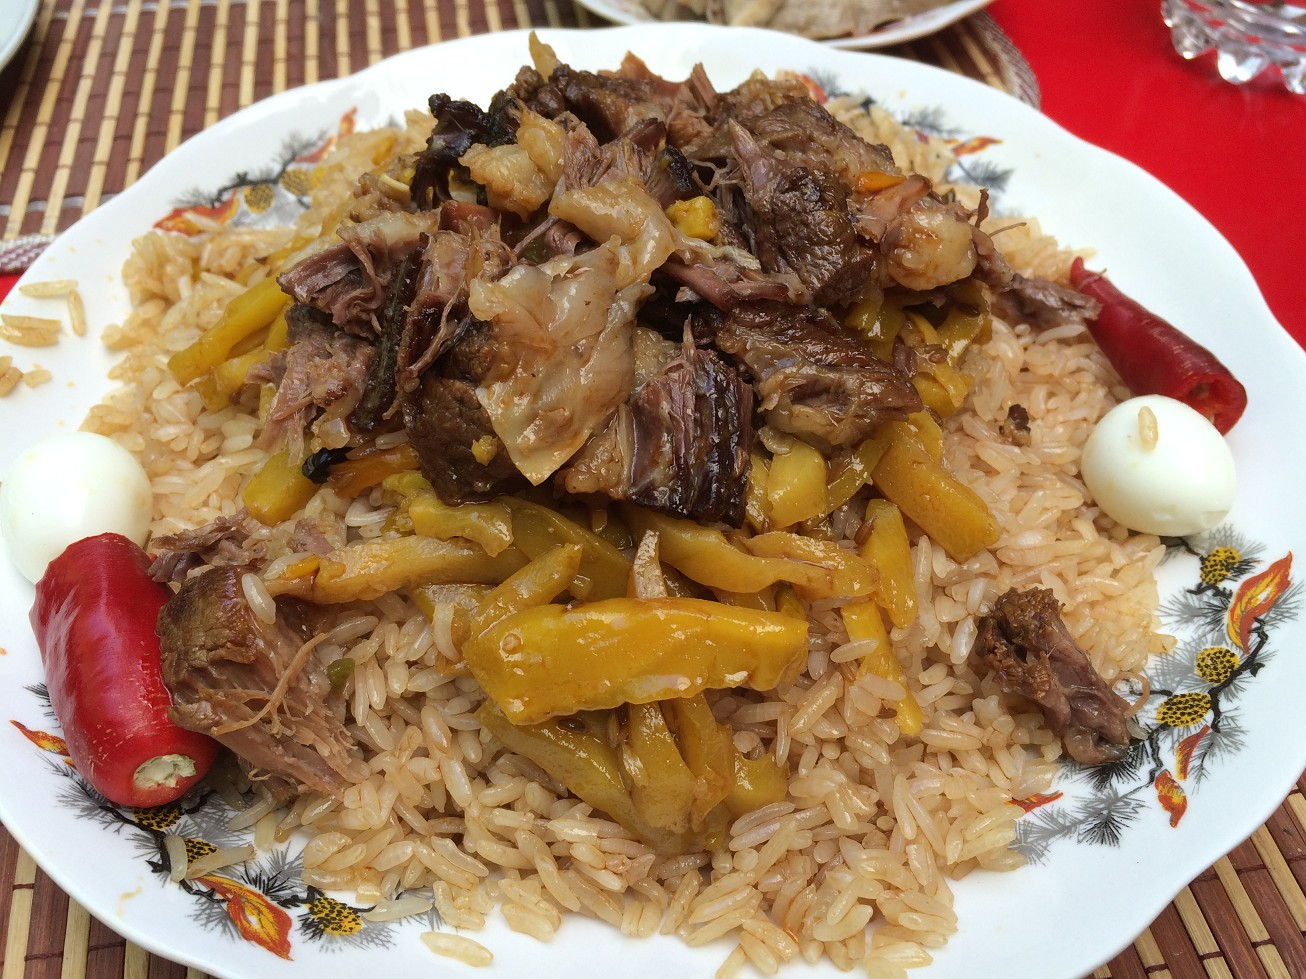 Look at the yummy plov, do you feel hungry?